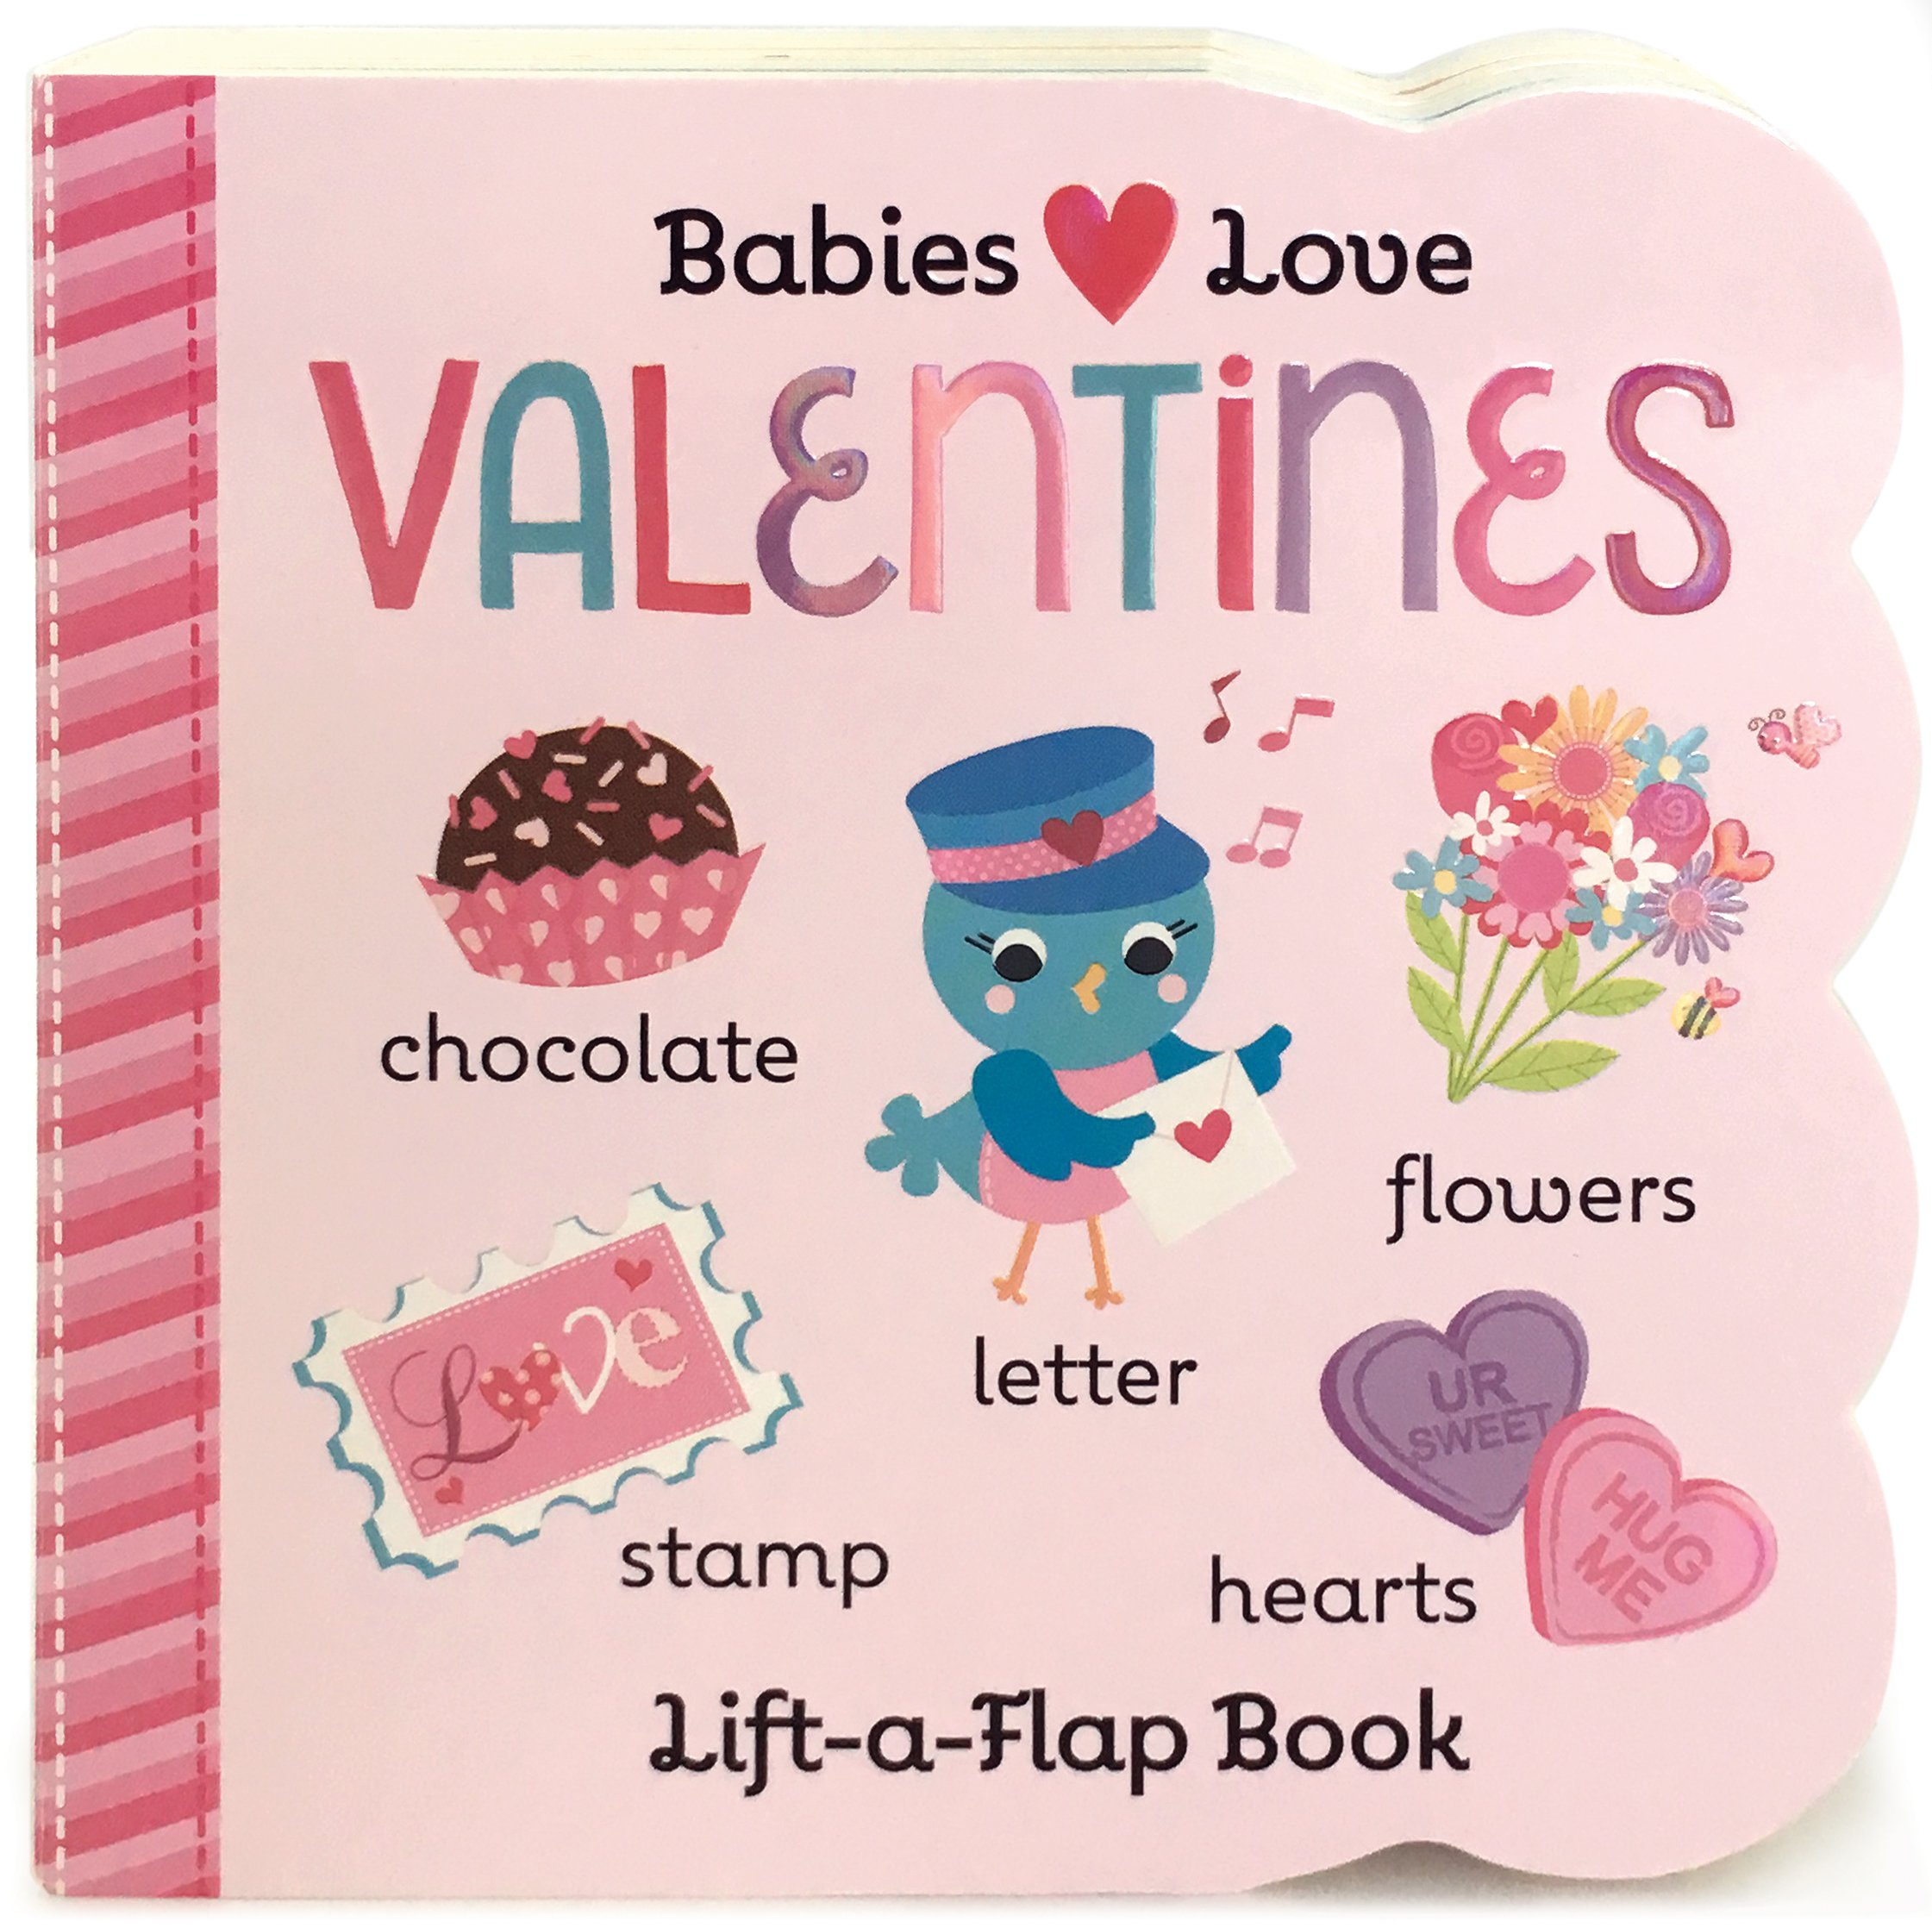 Valentine's: Lift-a-Flap Board Book (Babies Love)